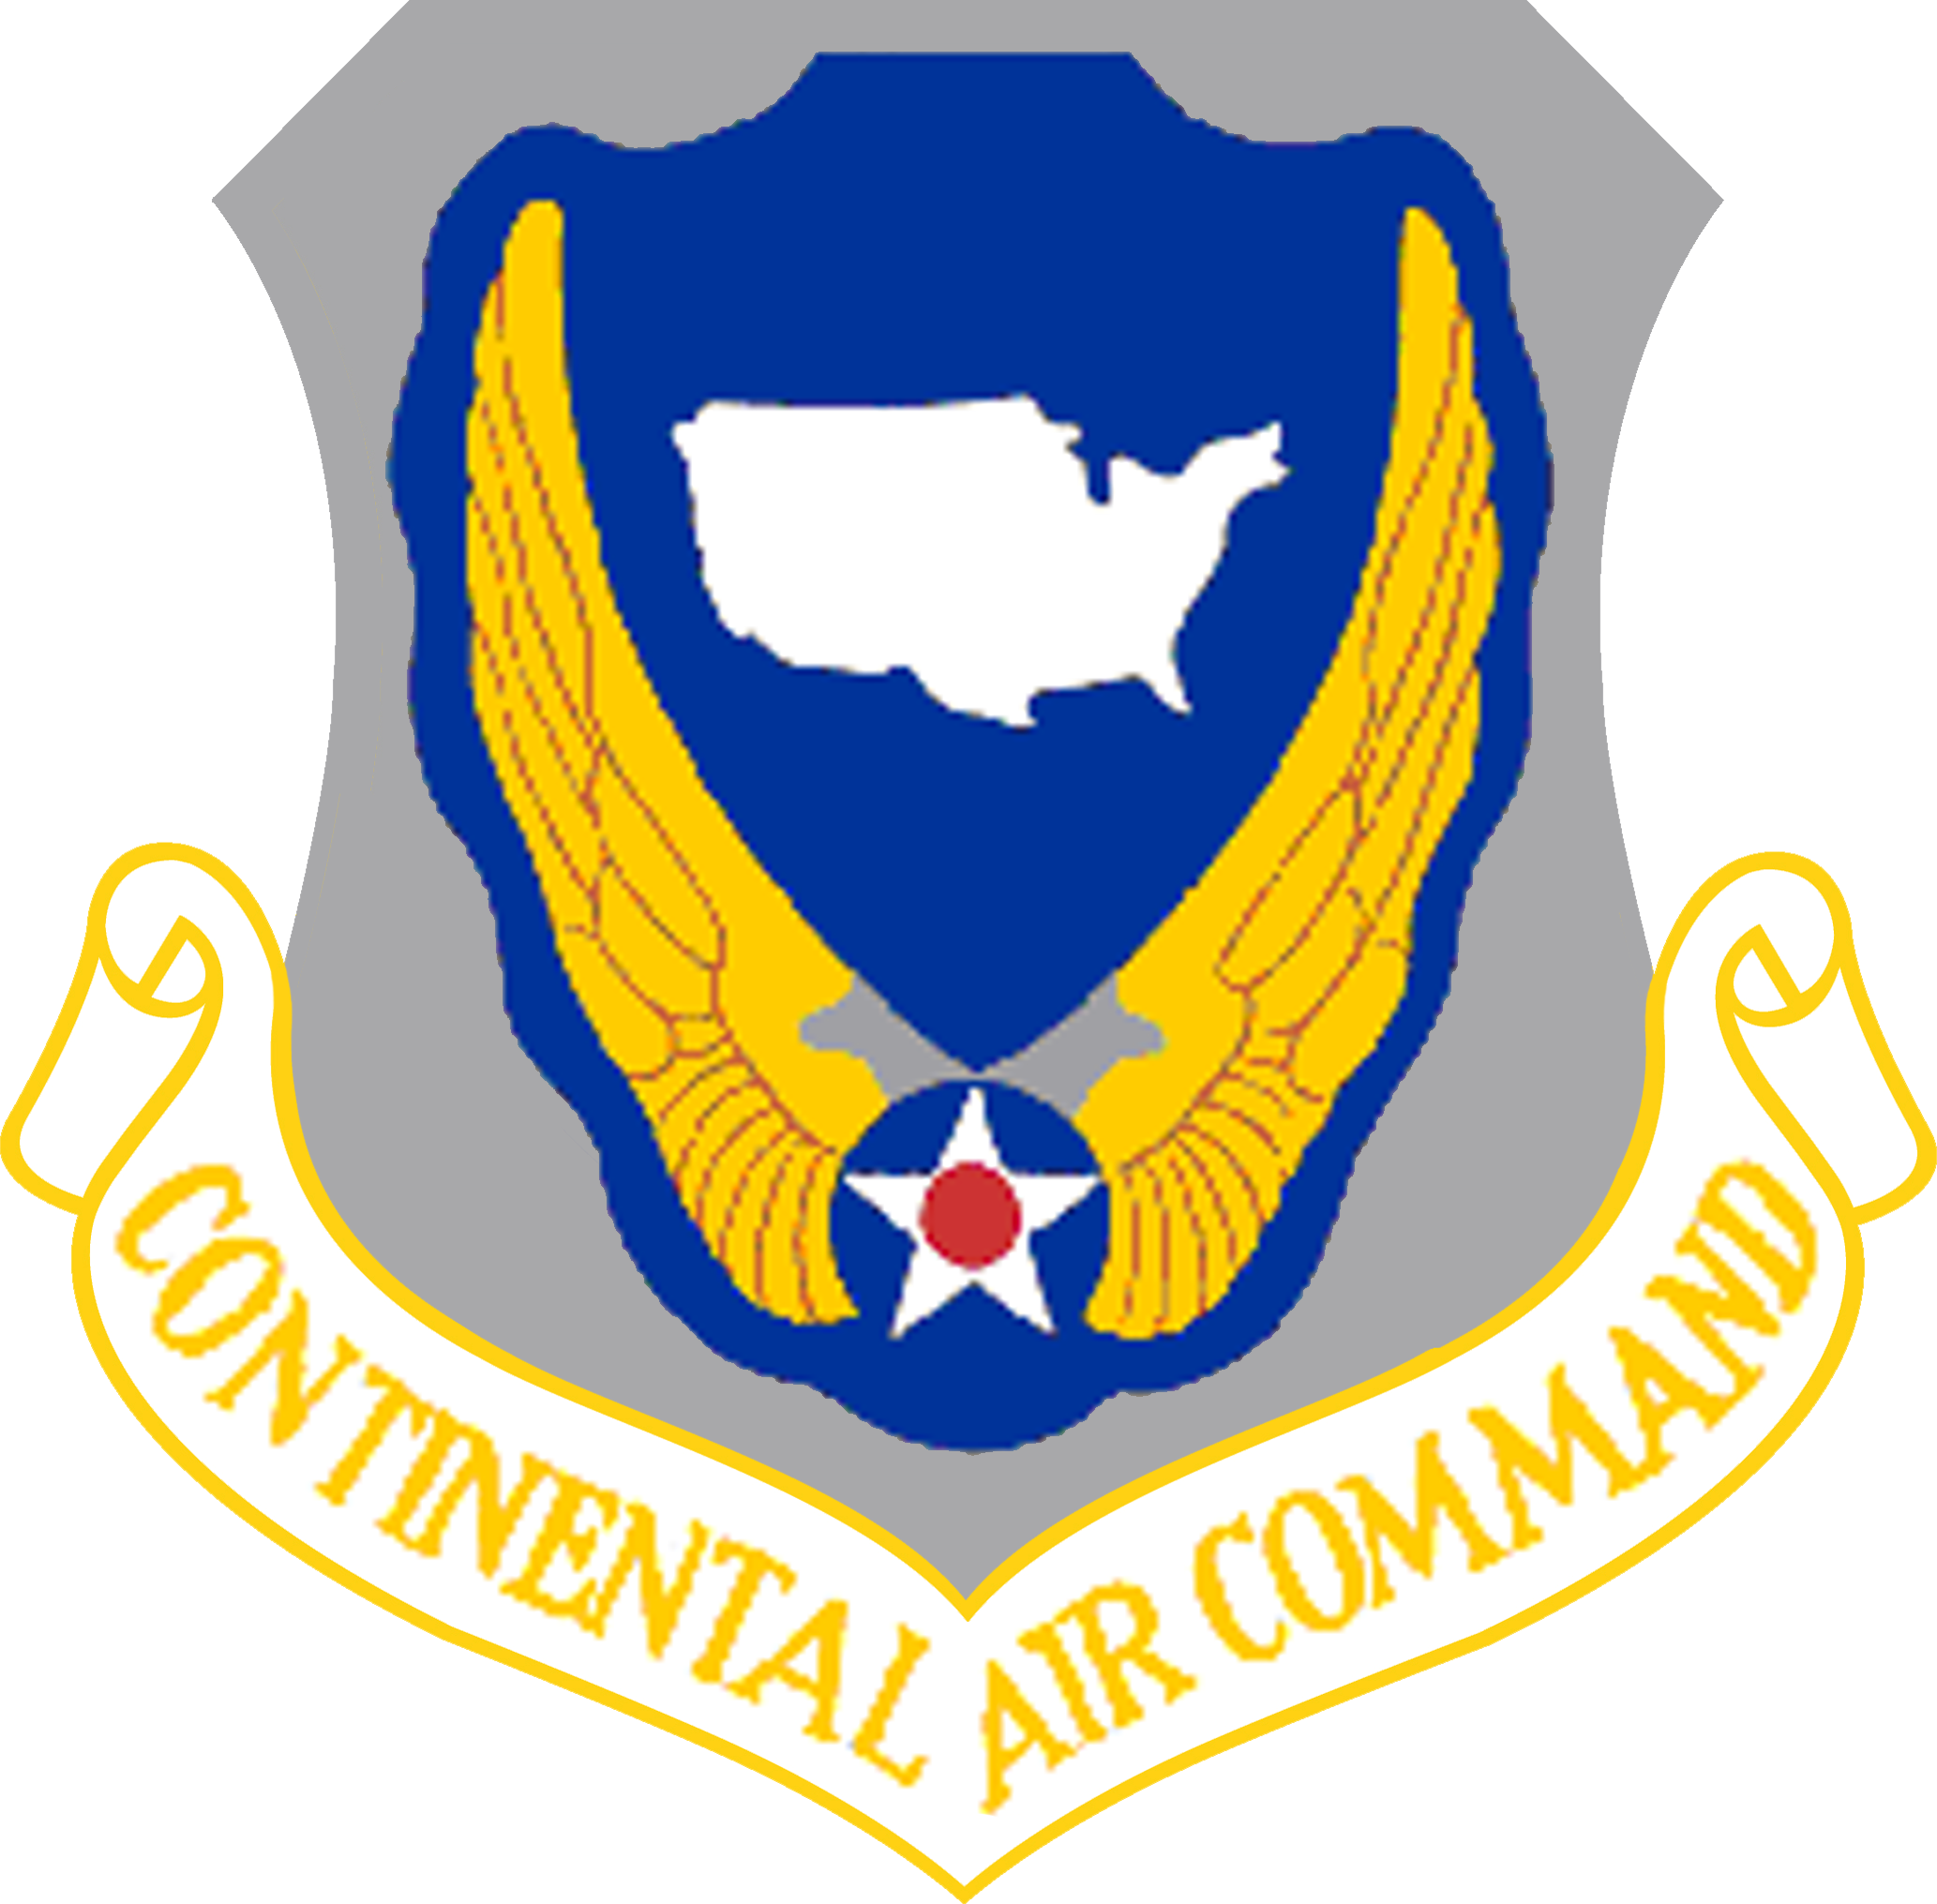 833rd aero squadron - Continental Air Command Png